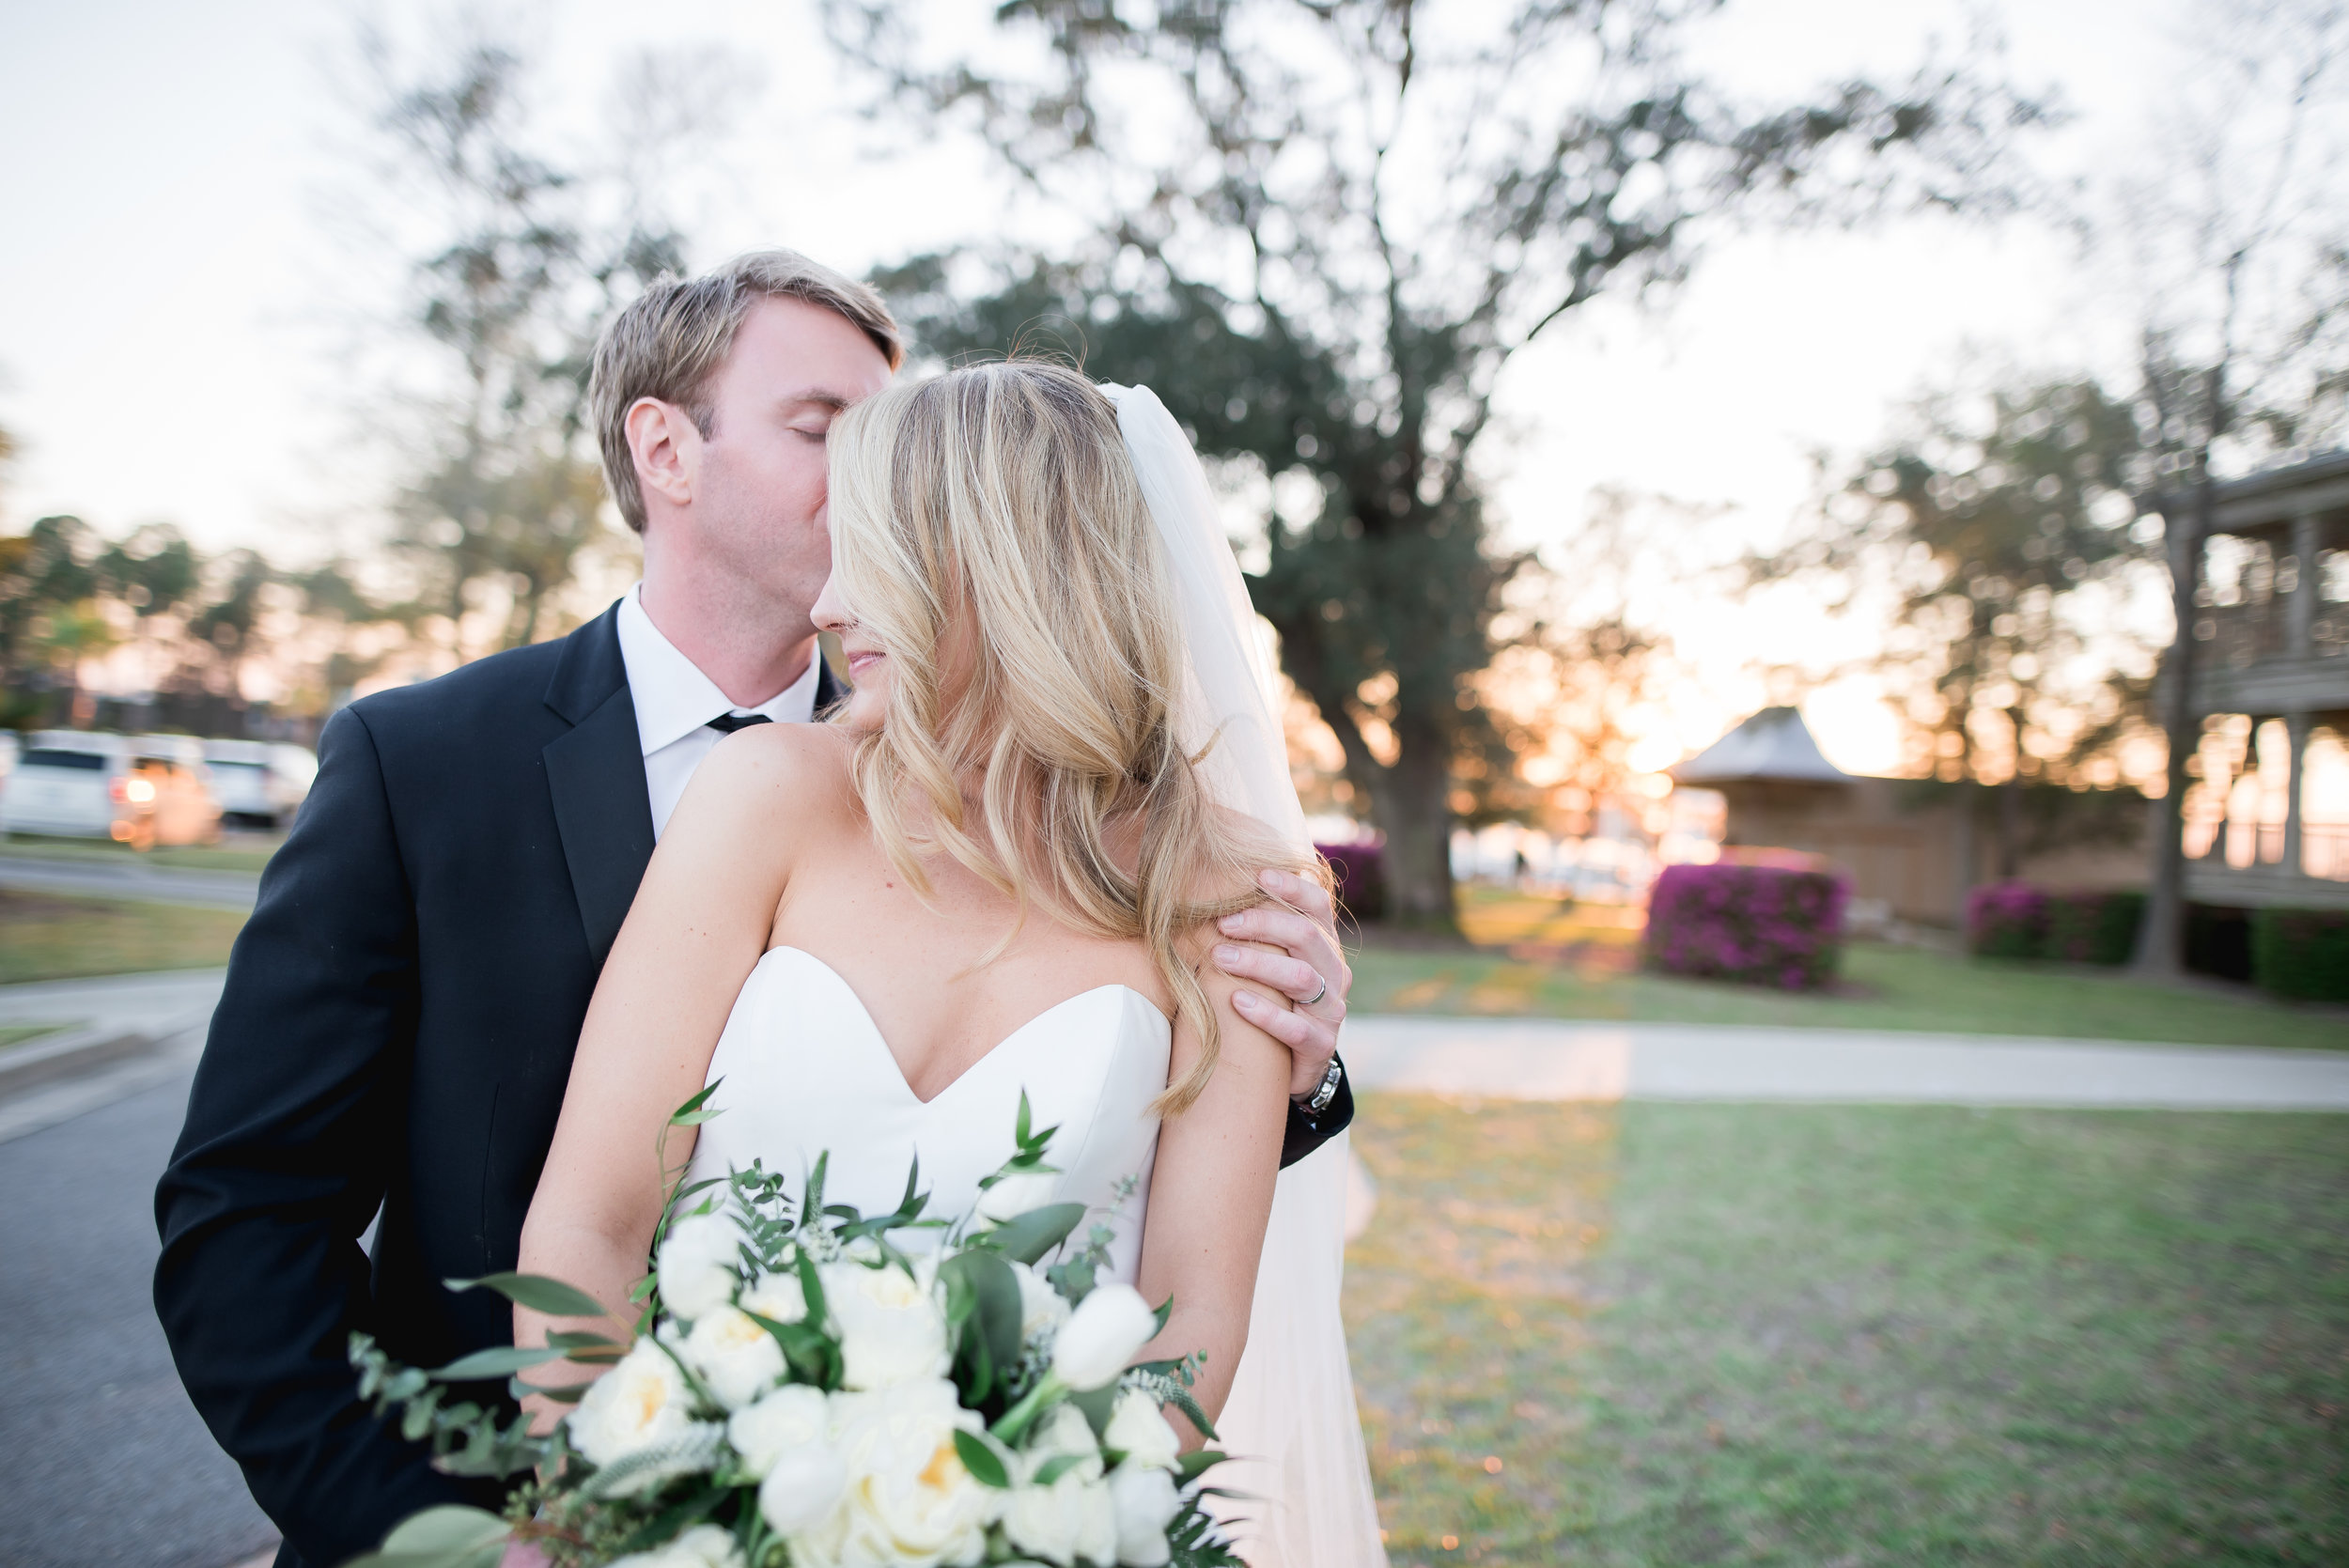 Heron Point Wedding Photographed by Kristen Grubb Photography